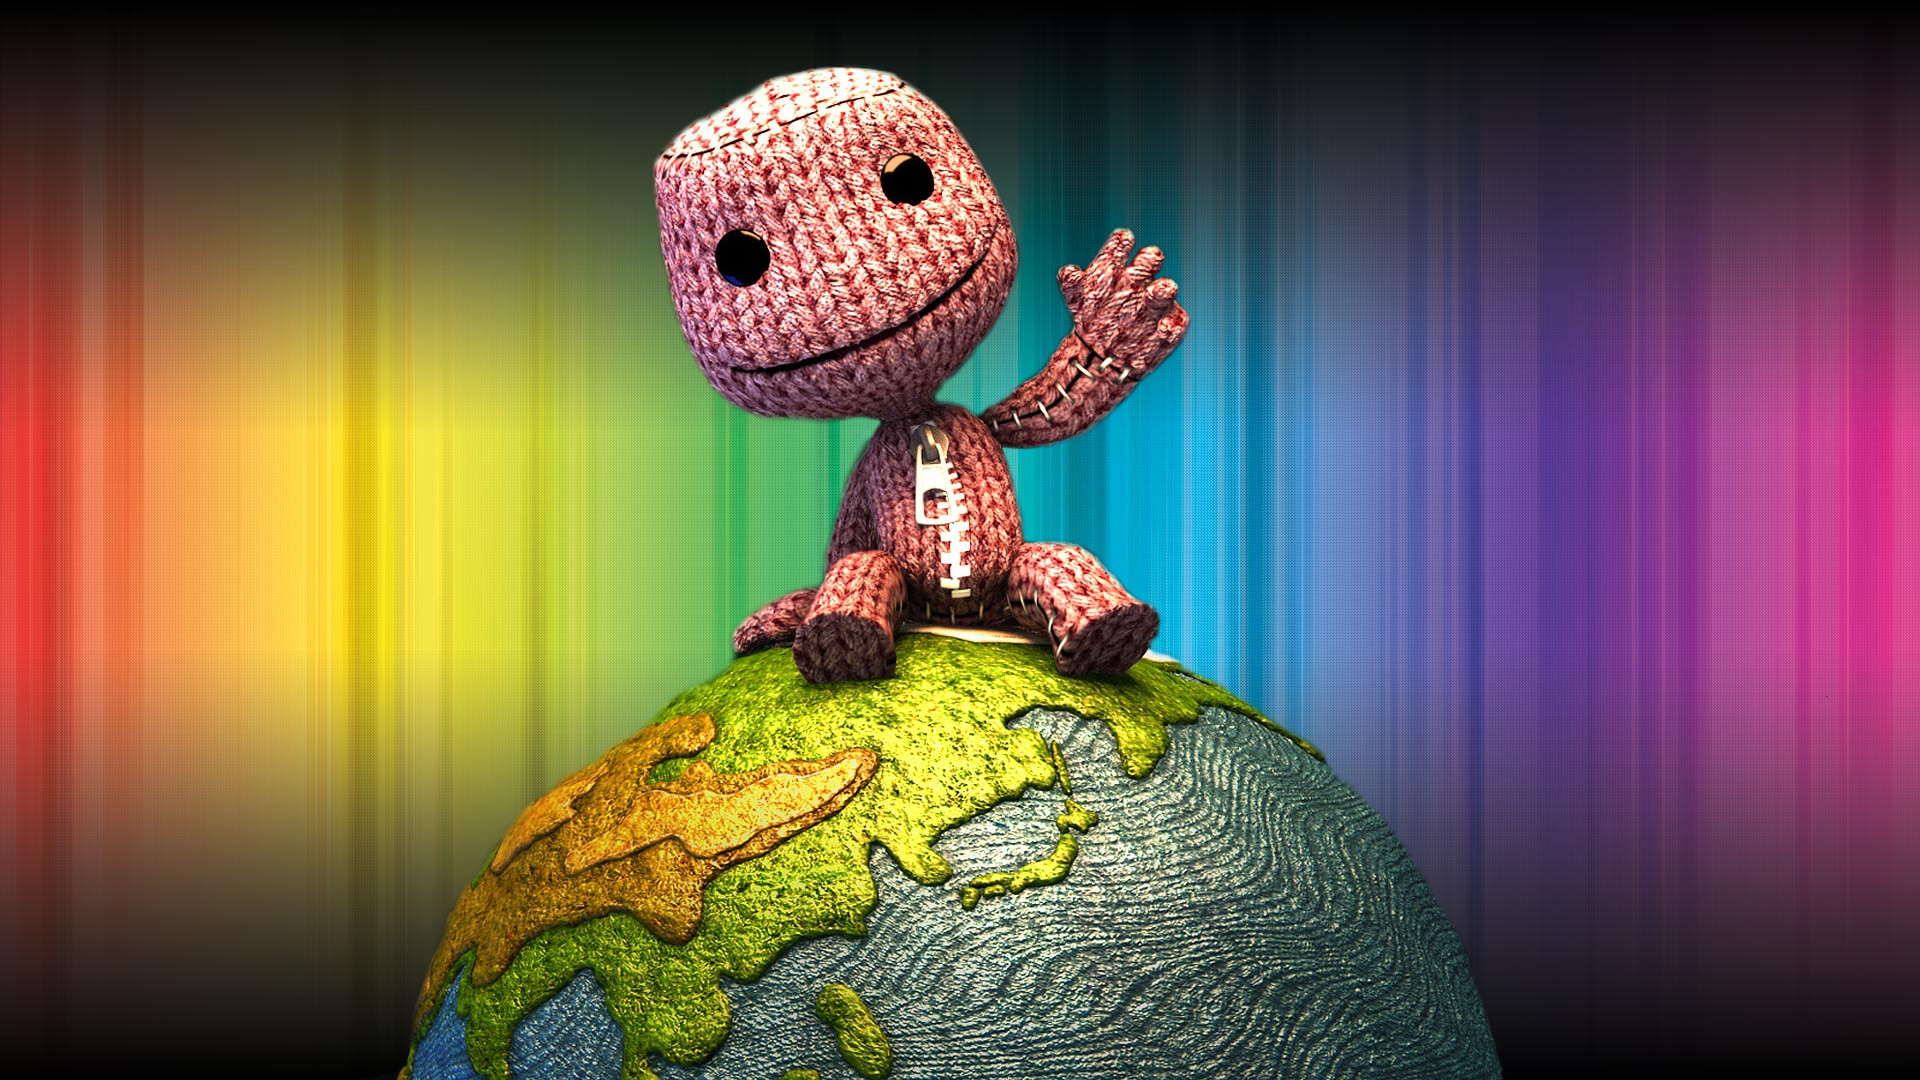 little big planet by megustadeviantart on deviantart